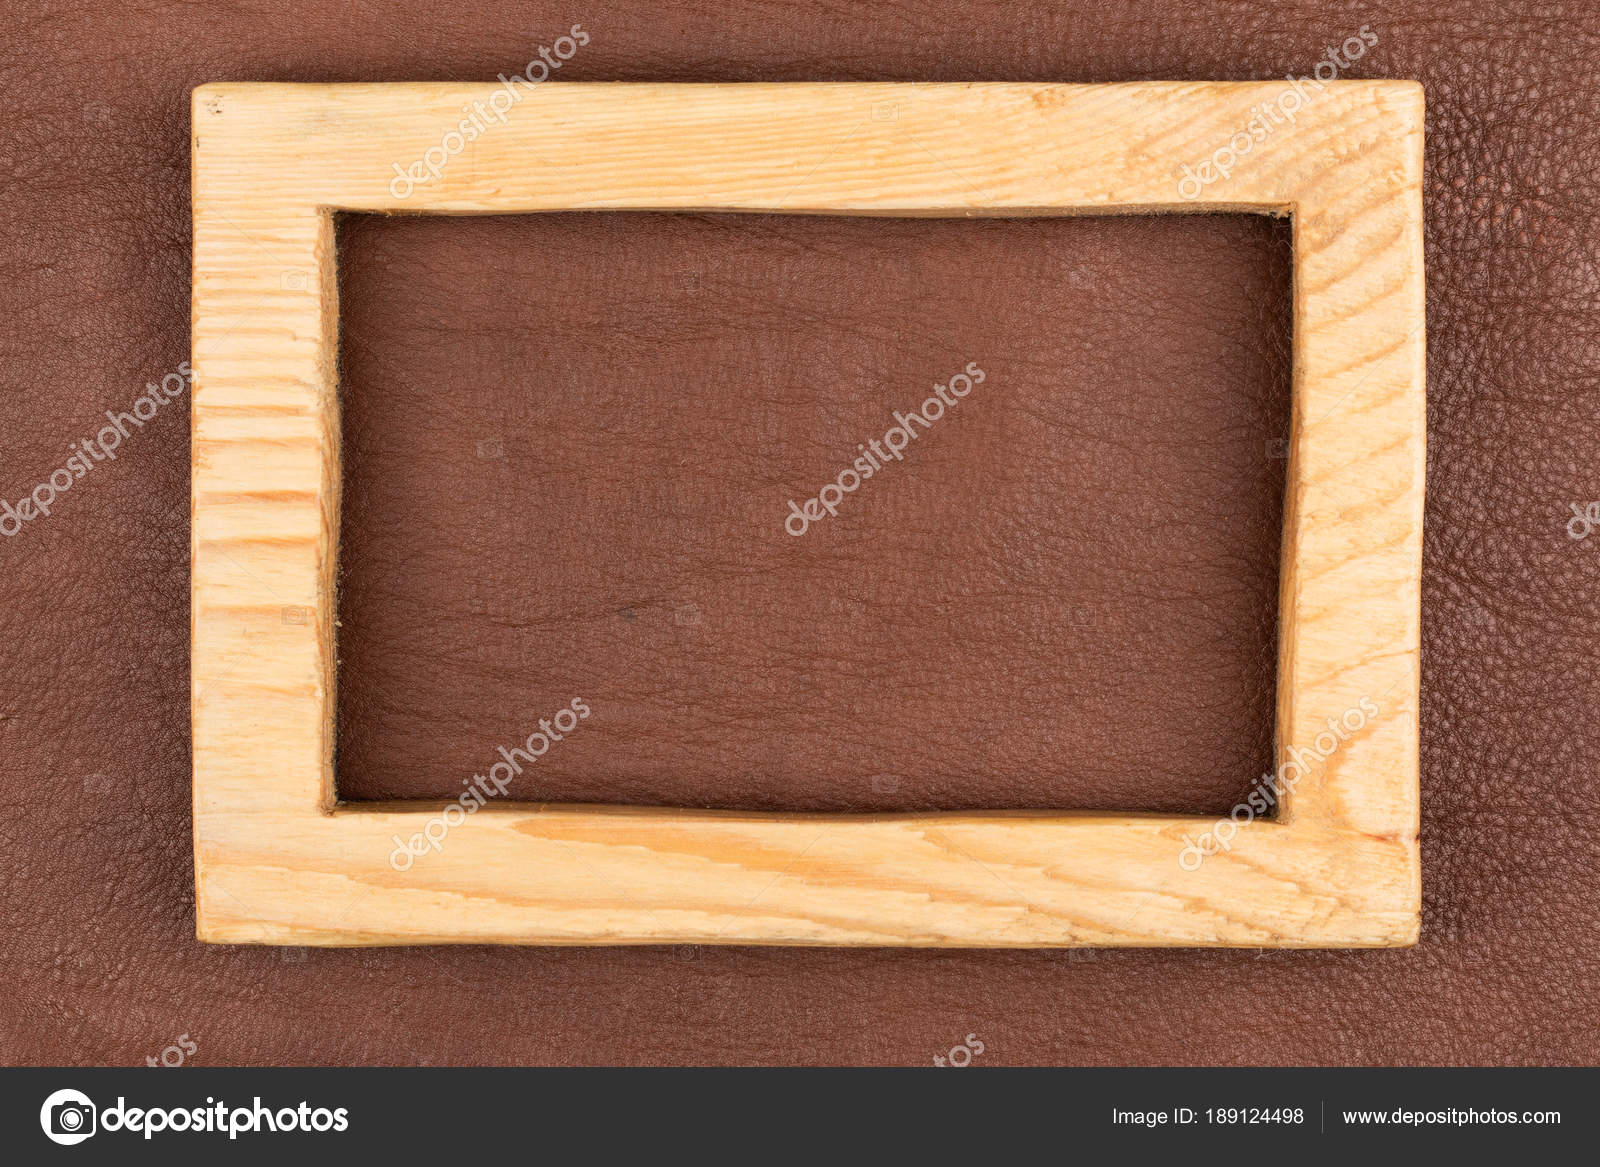 Rectangular Frame Made From Light Wood Lies On Brown Natural Leather